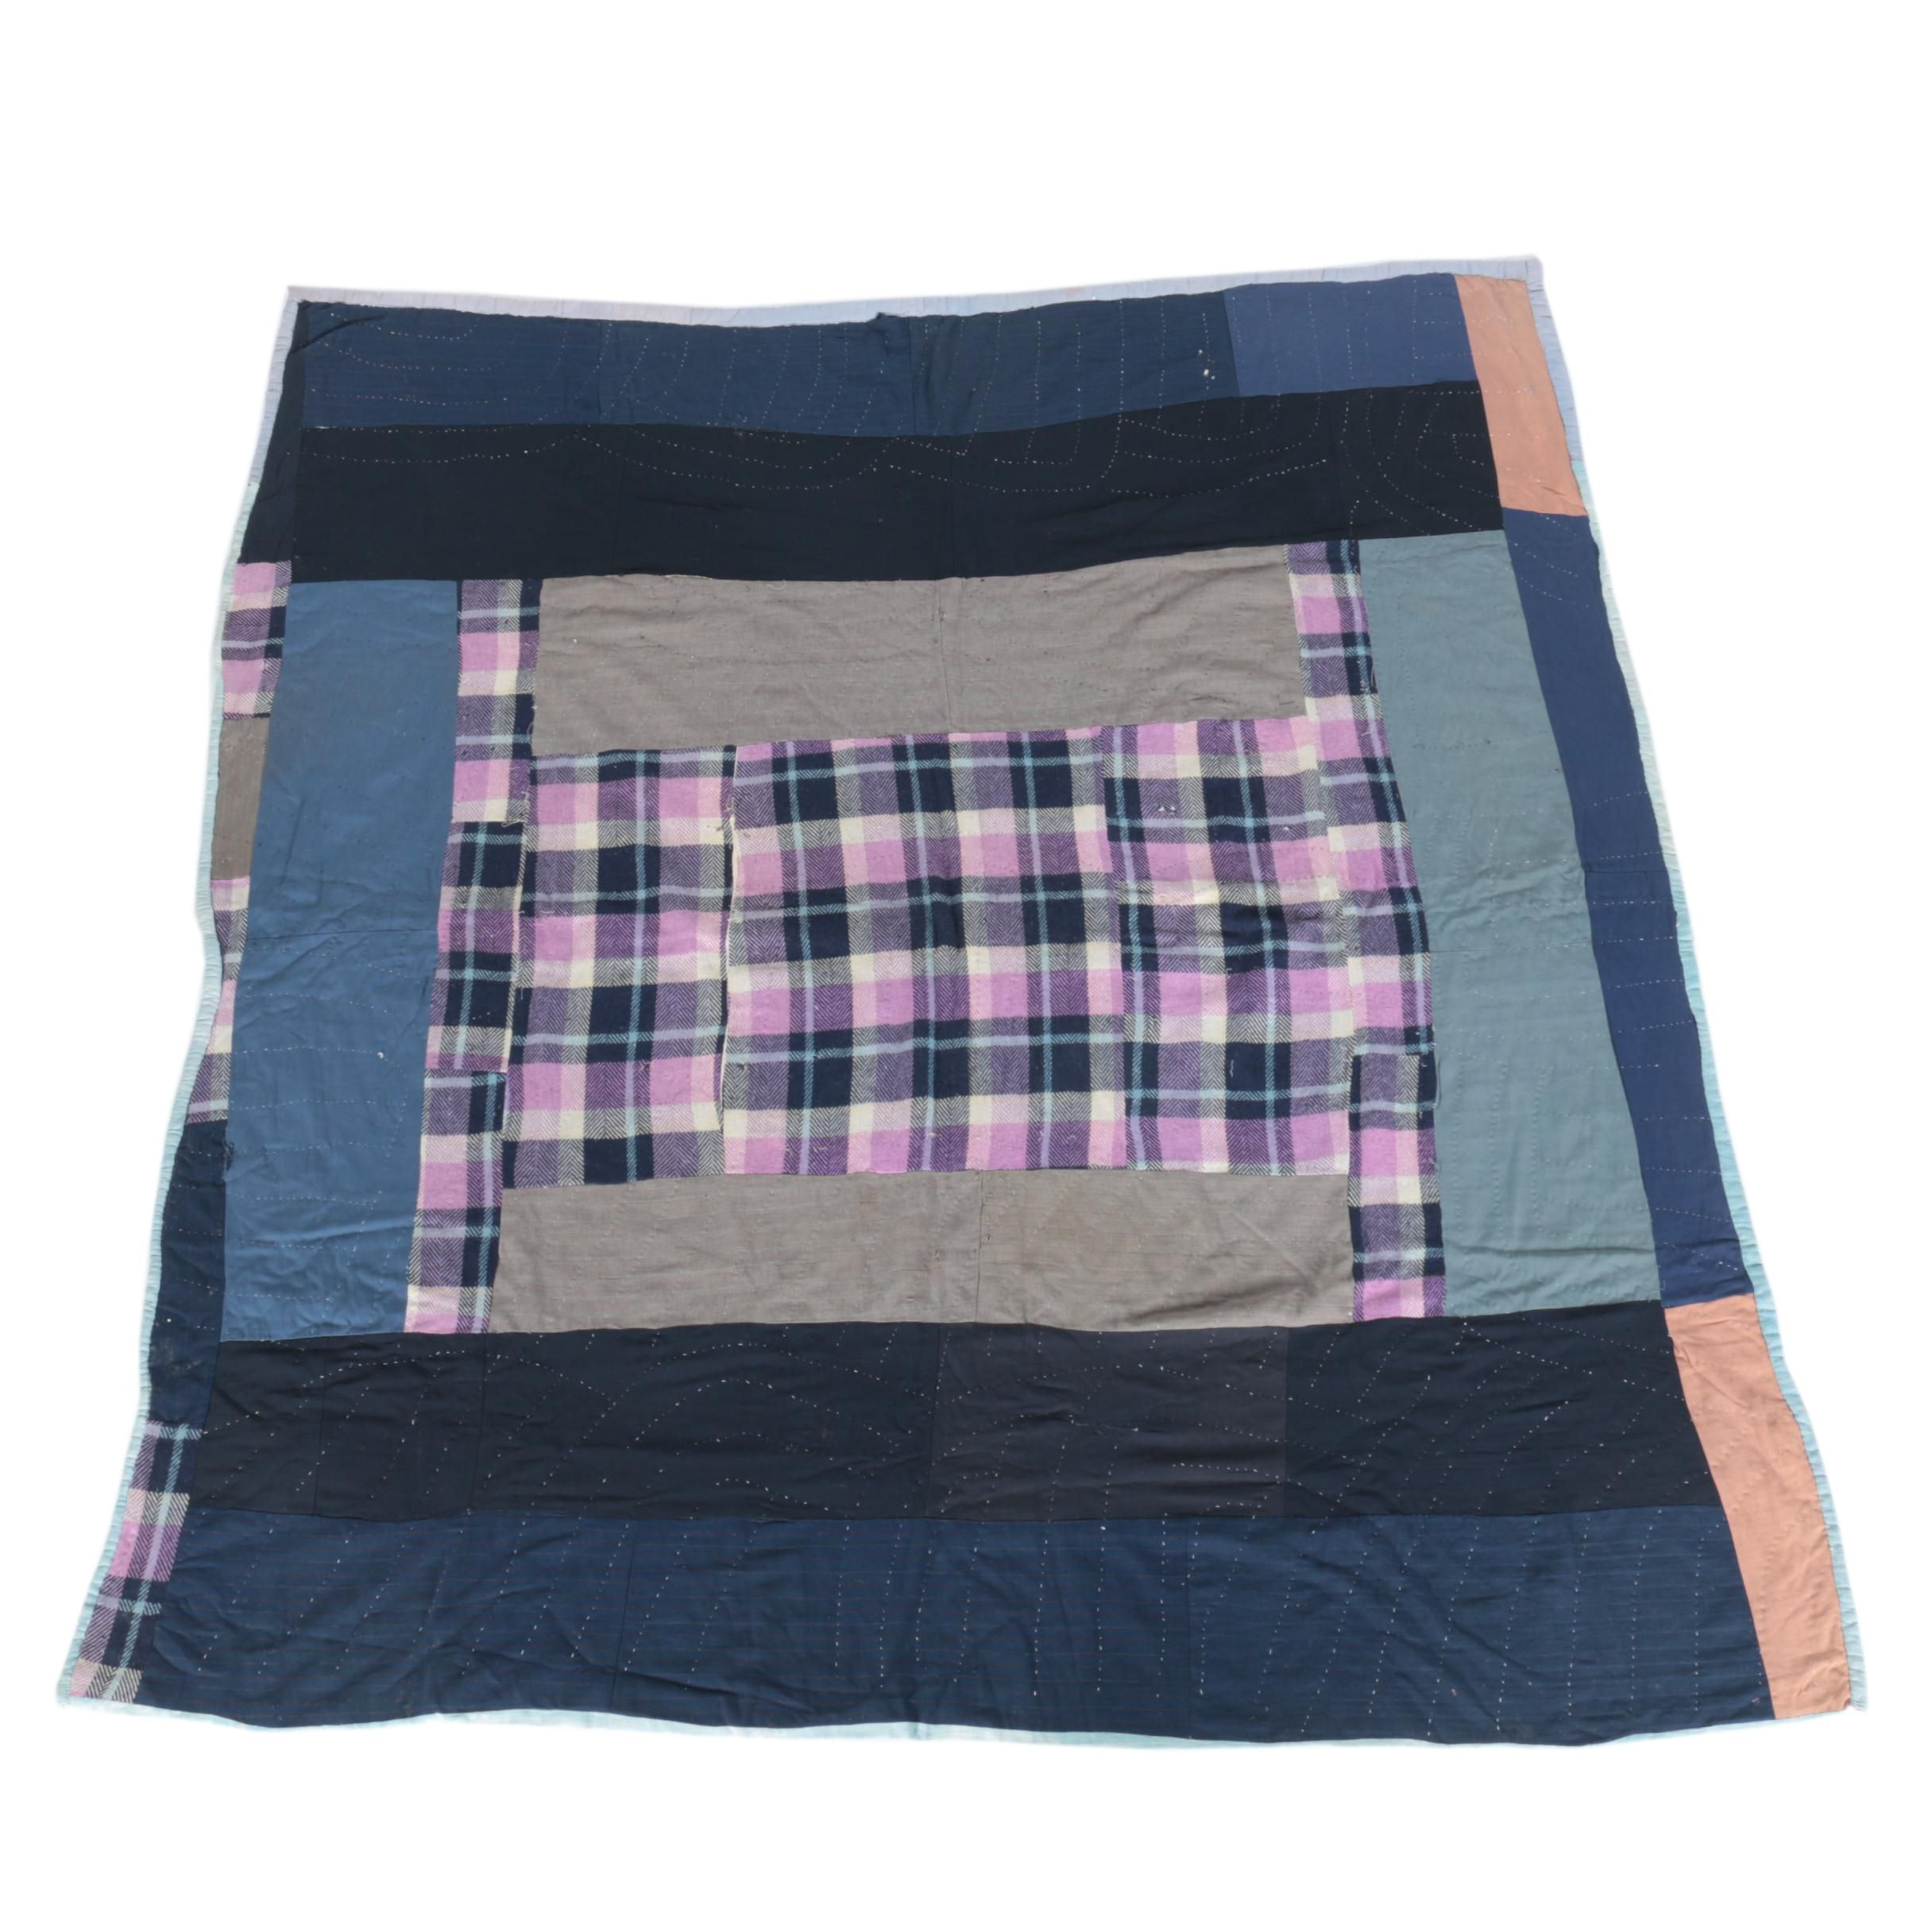 Blue and Plaid Quilt